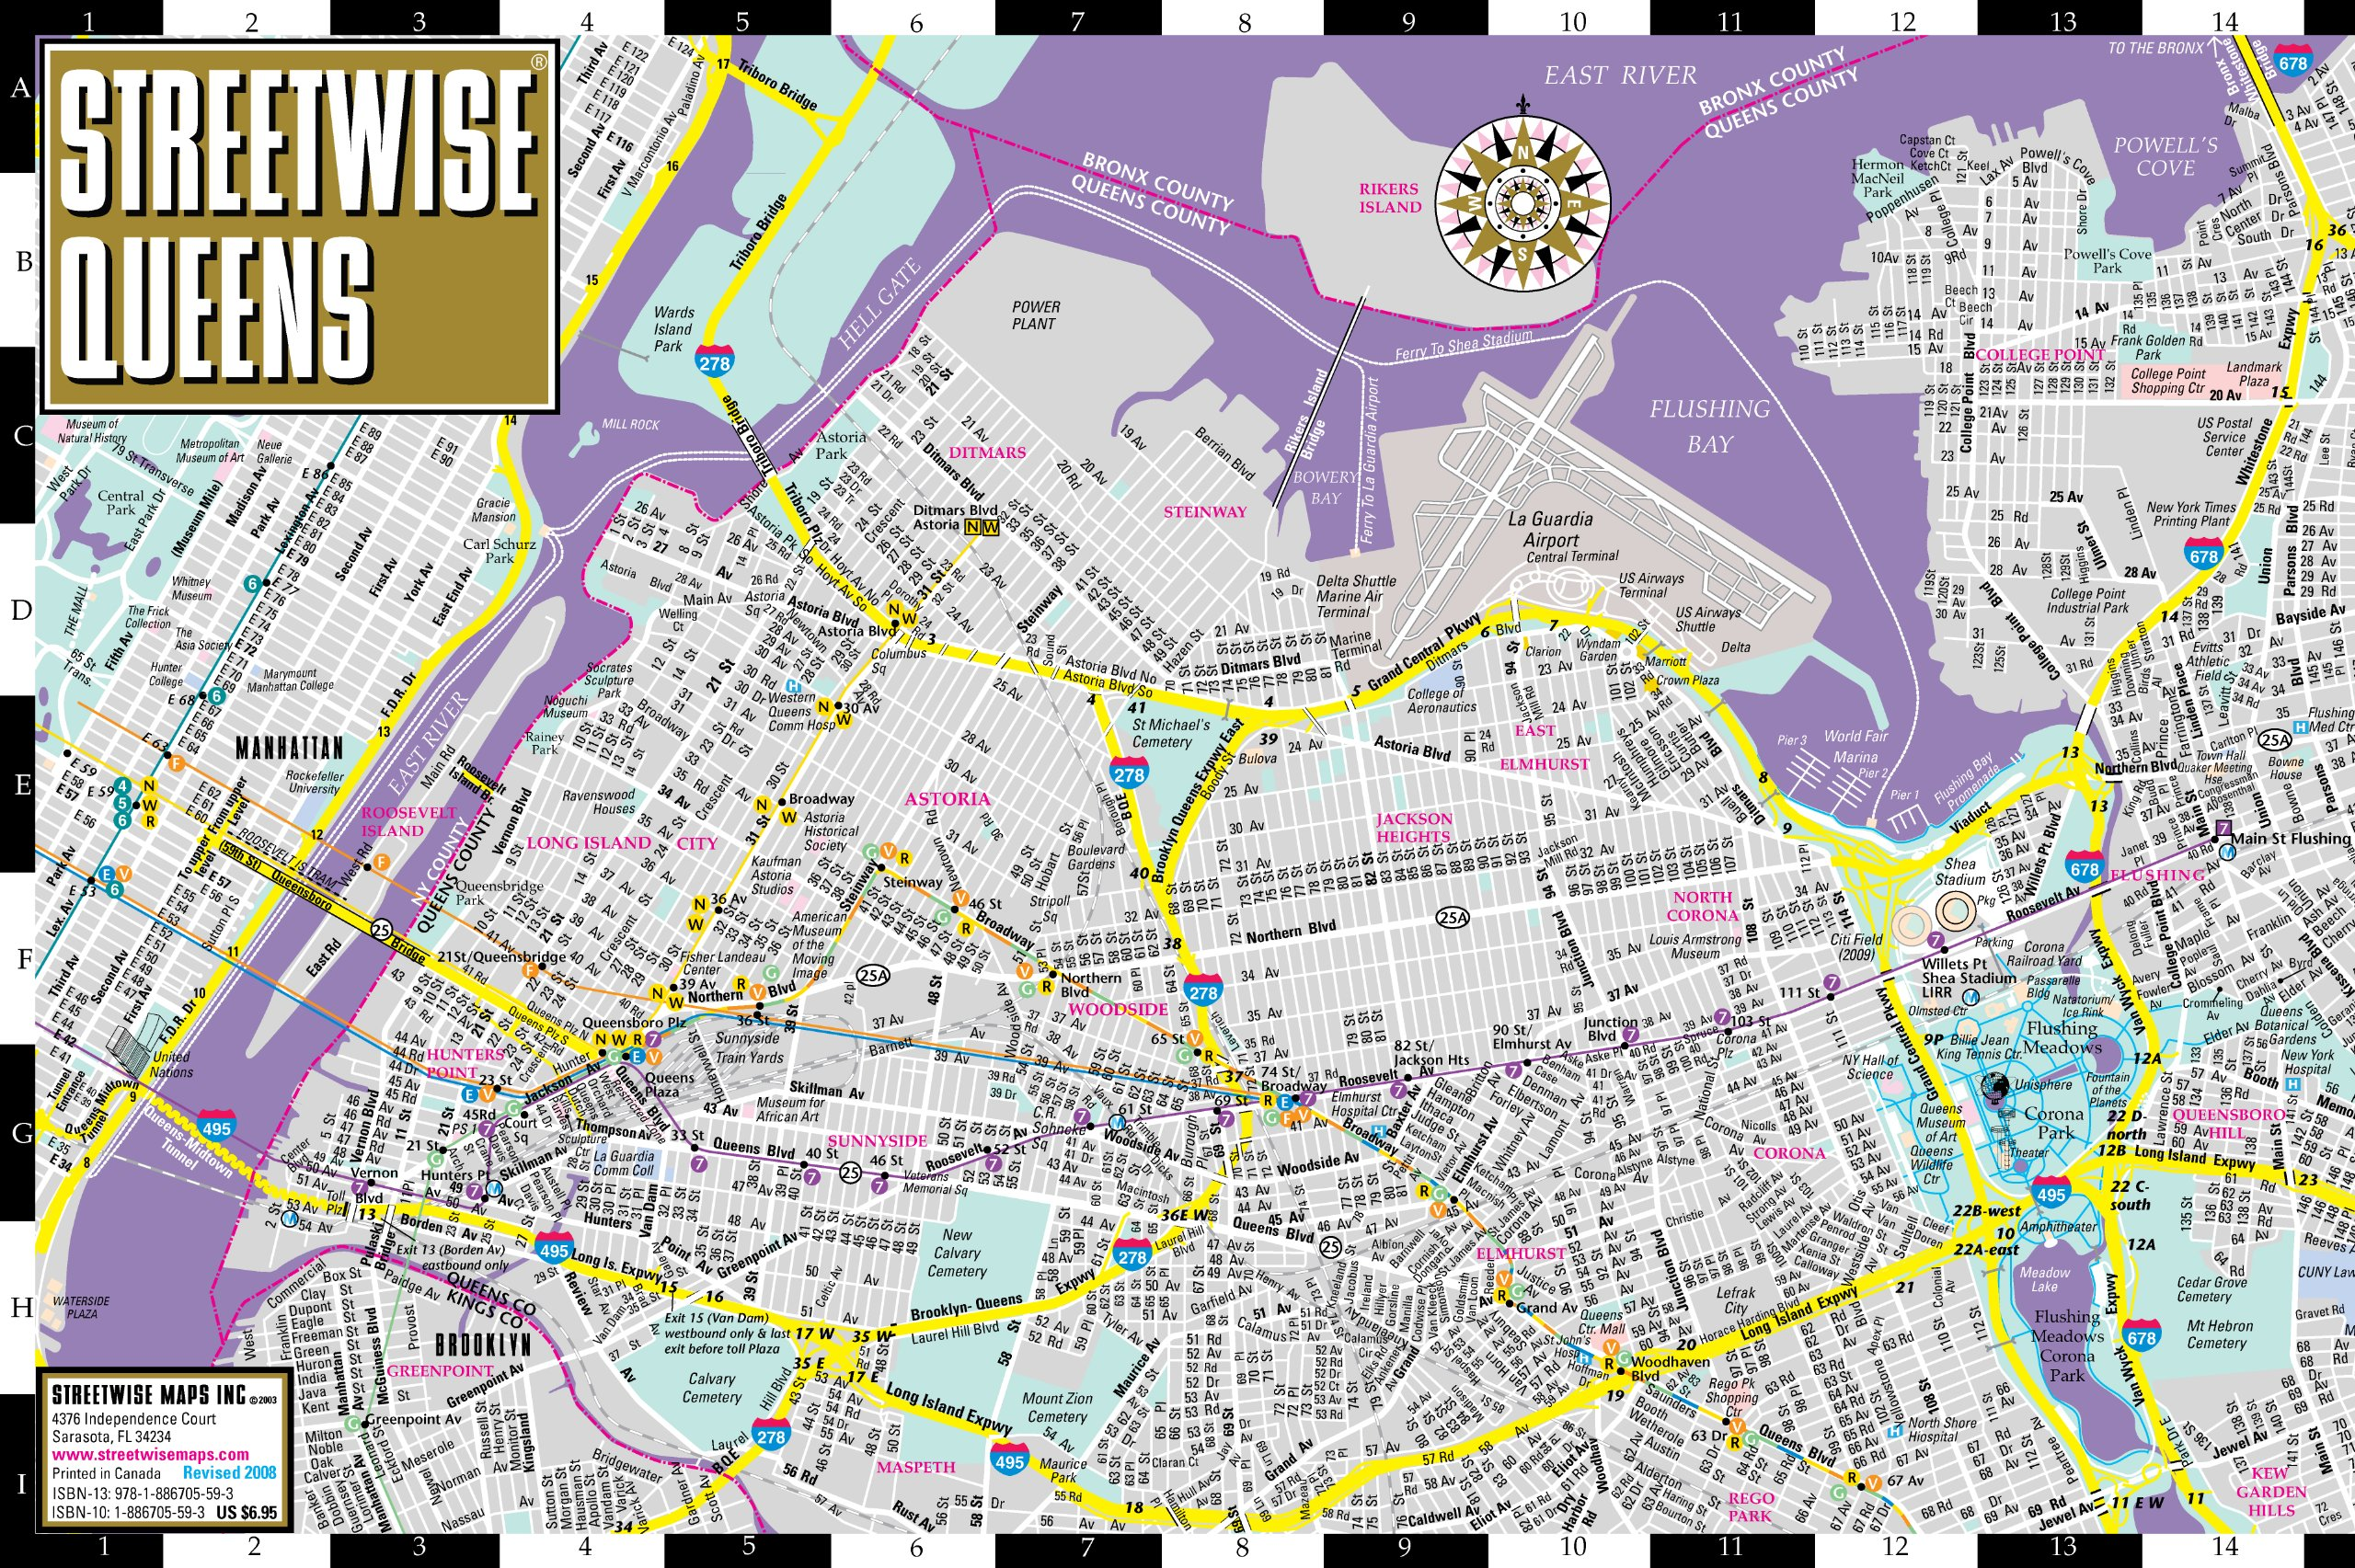 New York Subway Map 2008.Streetwise Queens Map Laminated City Street Map Of Queens New